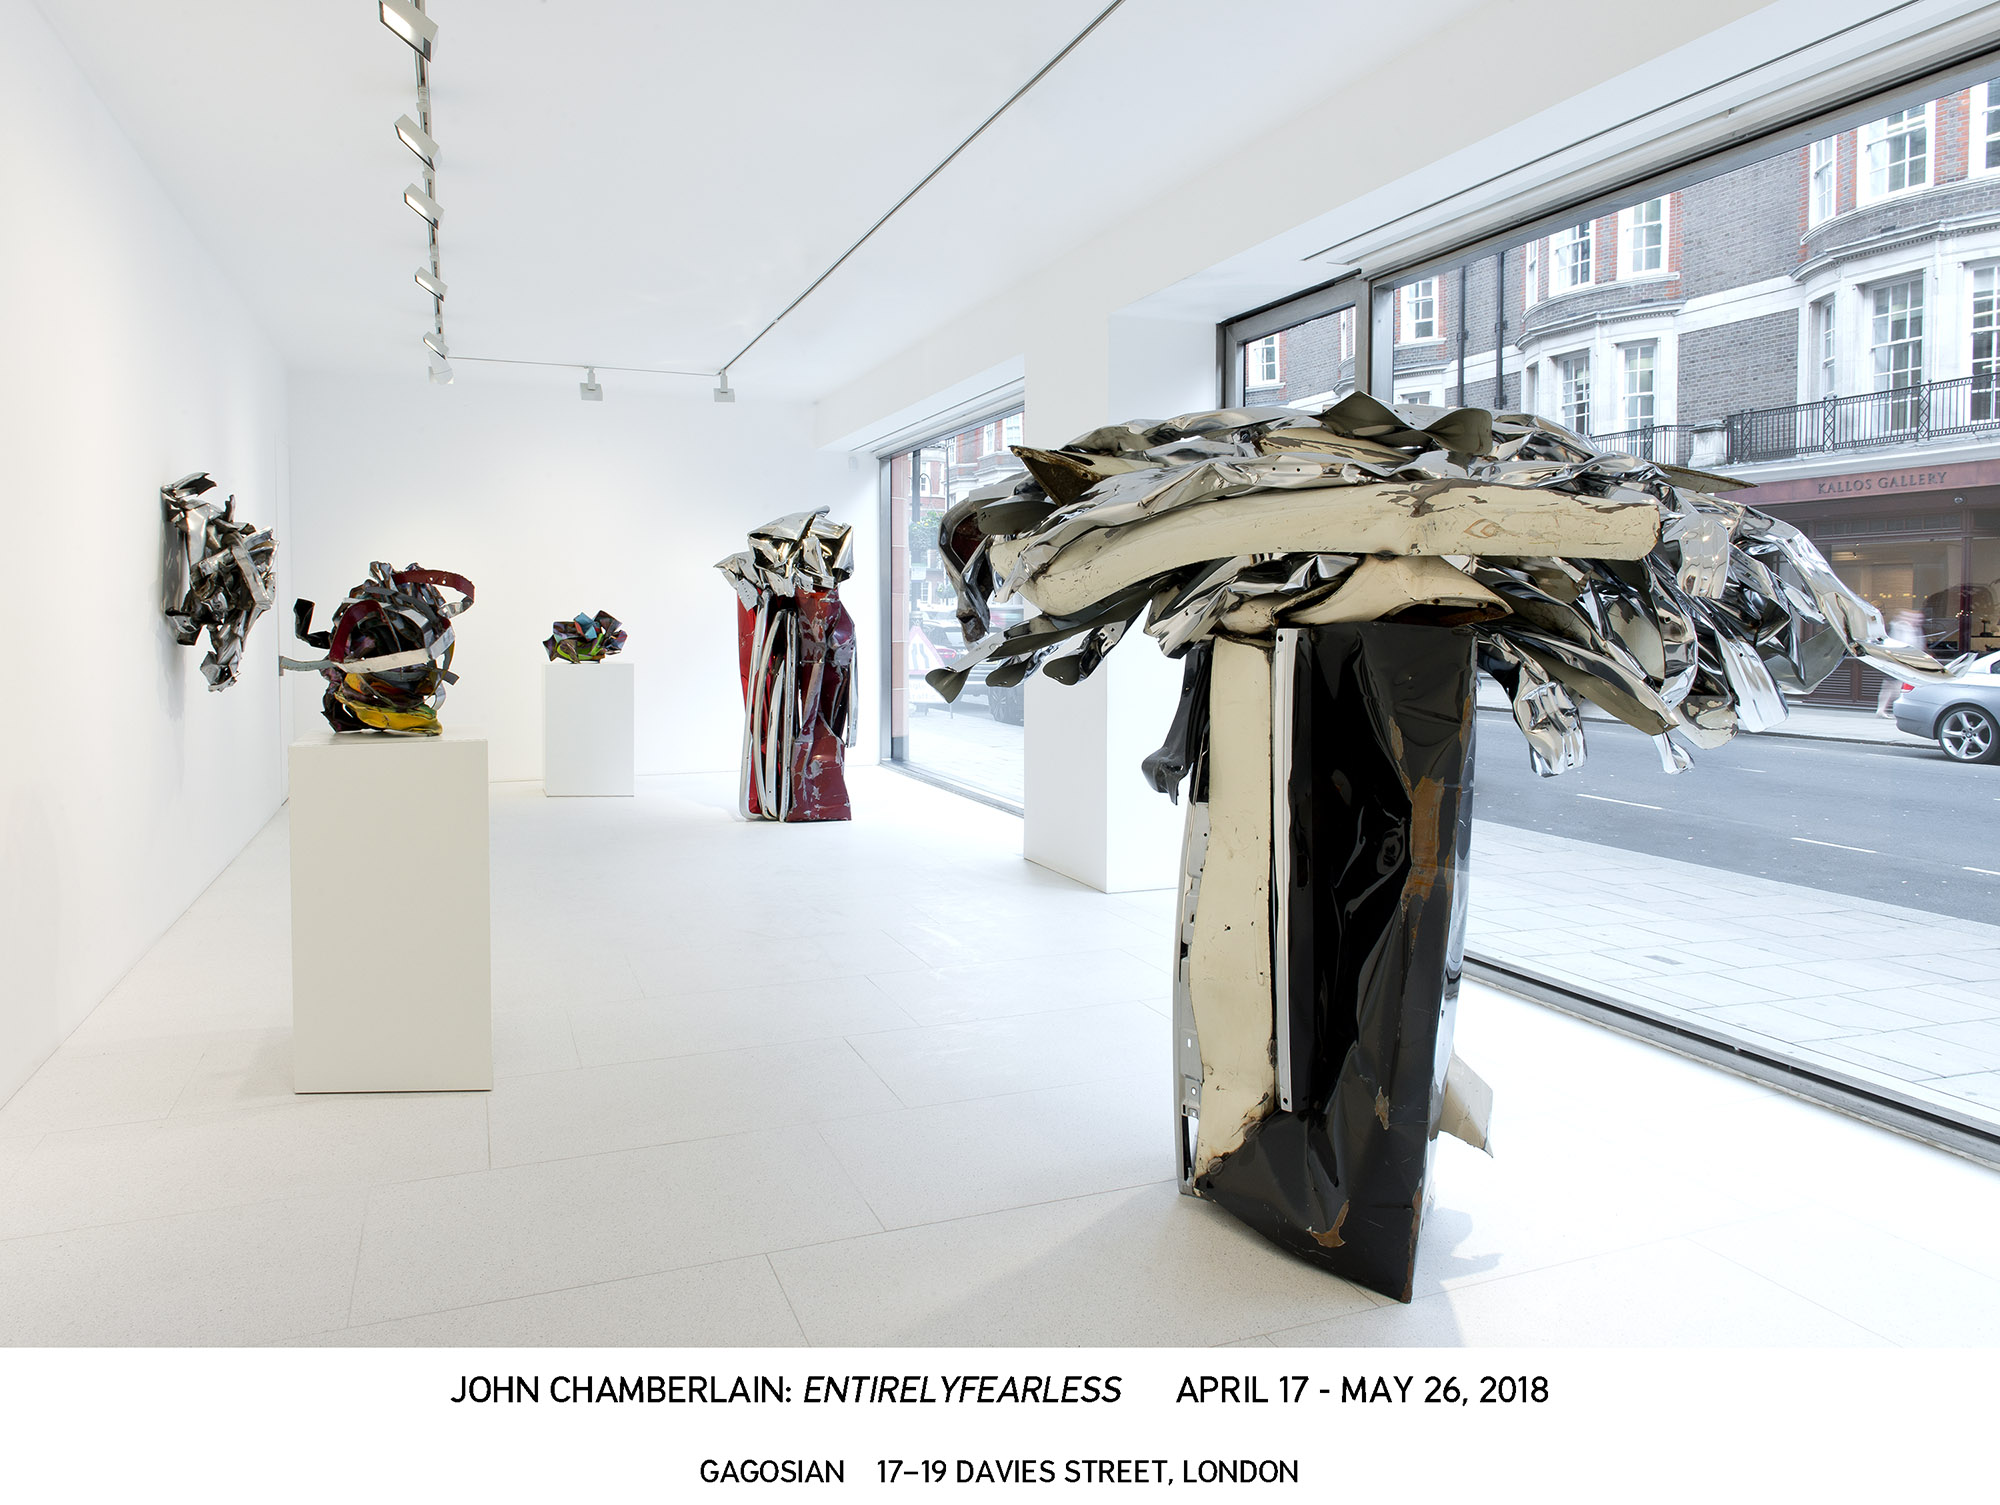 CHAMBERLAIN 2018 ENTIRELYFEARLESS Installation view 1 (blinds up).jpg